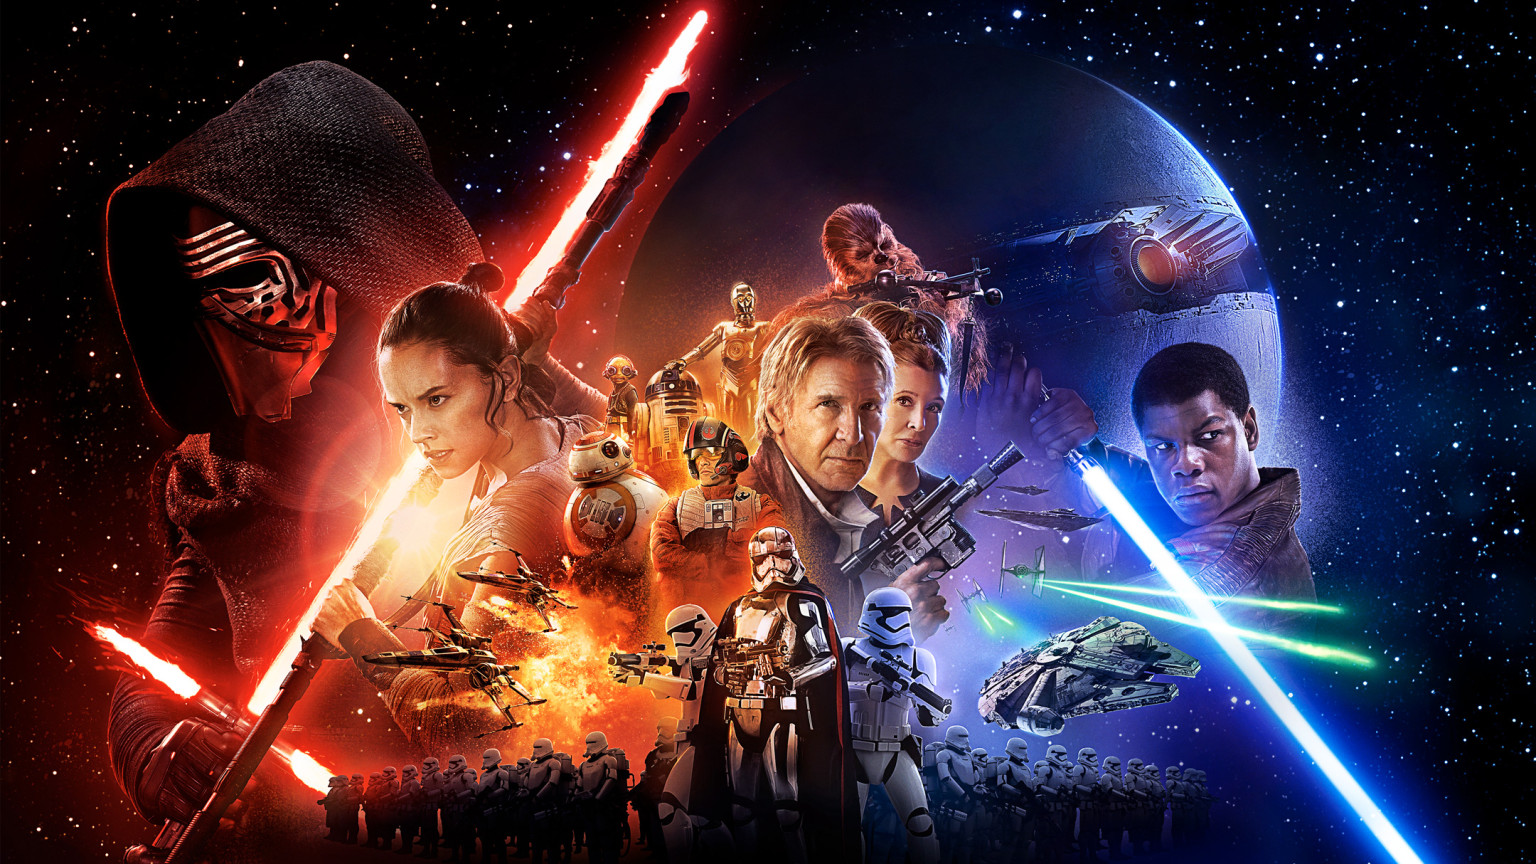 Star Wars Episode VII News and Spots